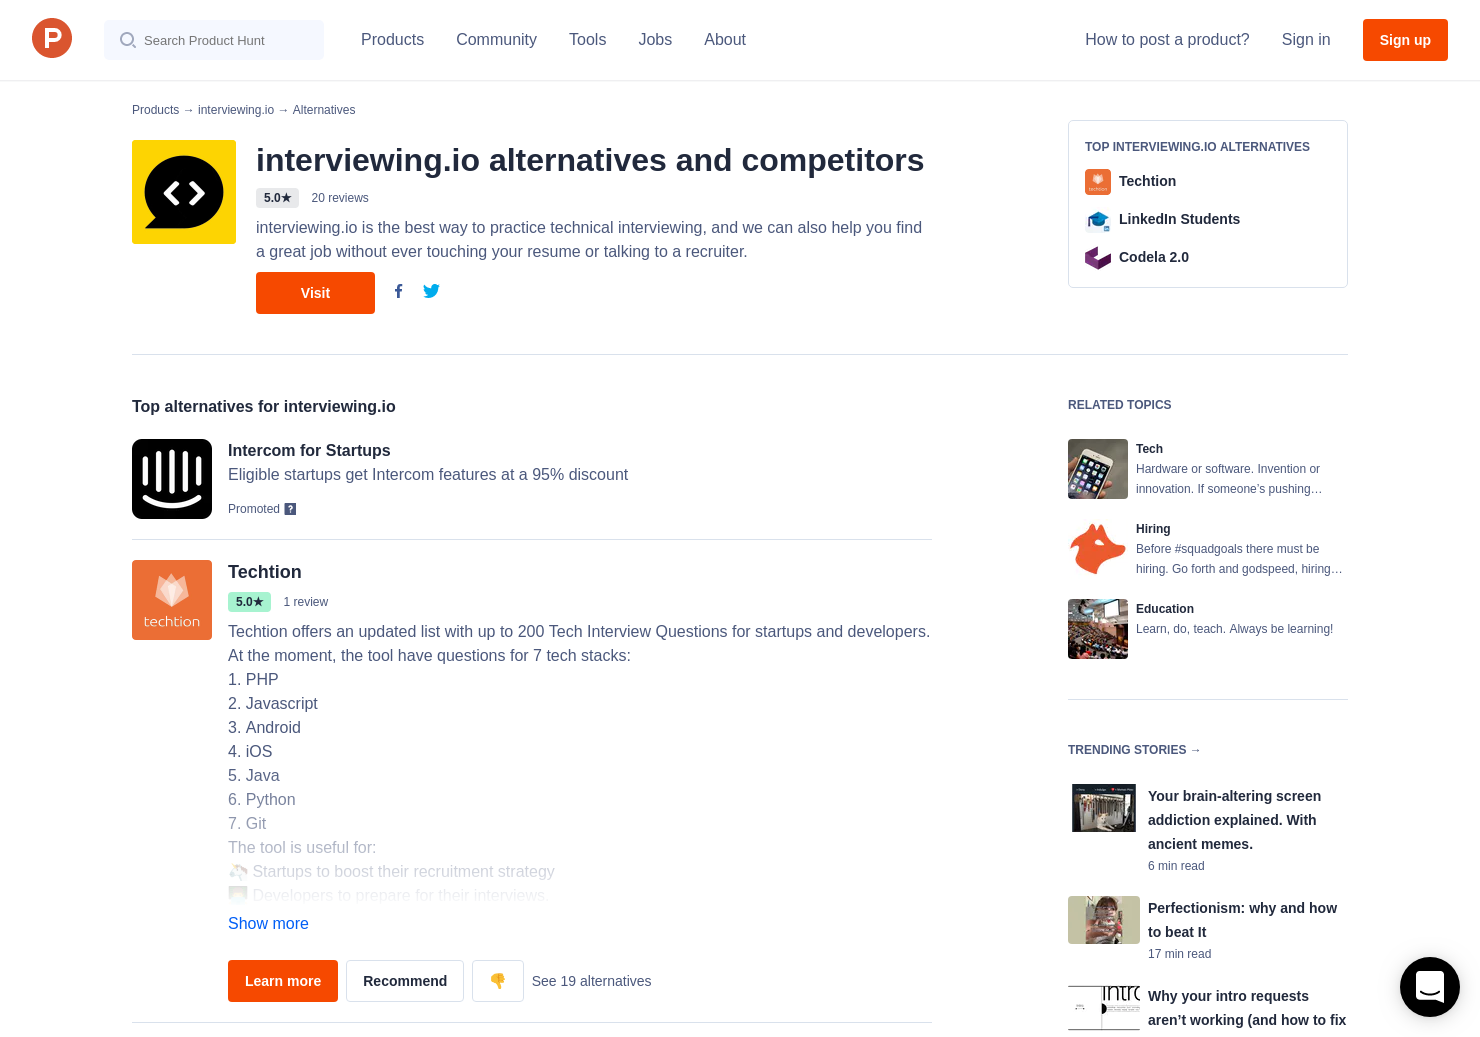 8 Alternatives to Interviewing io | Product Hunt